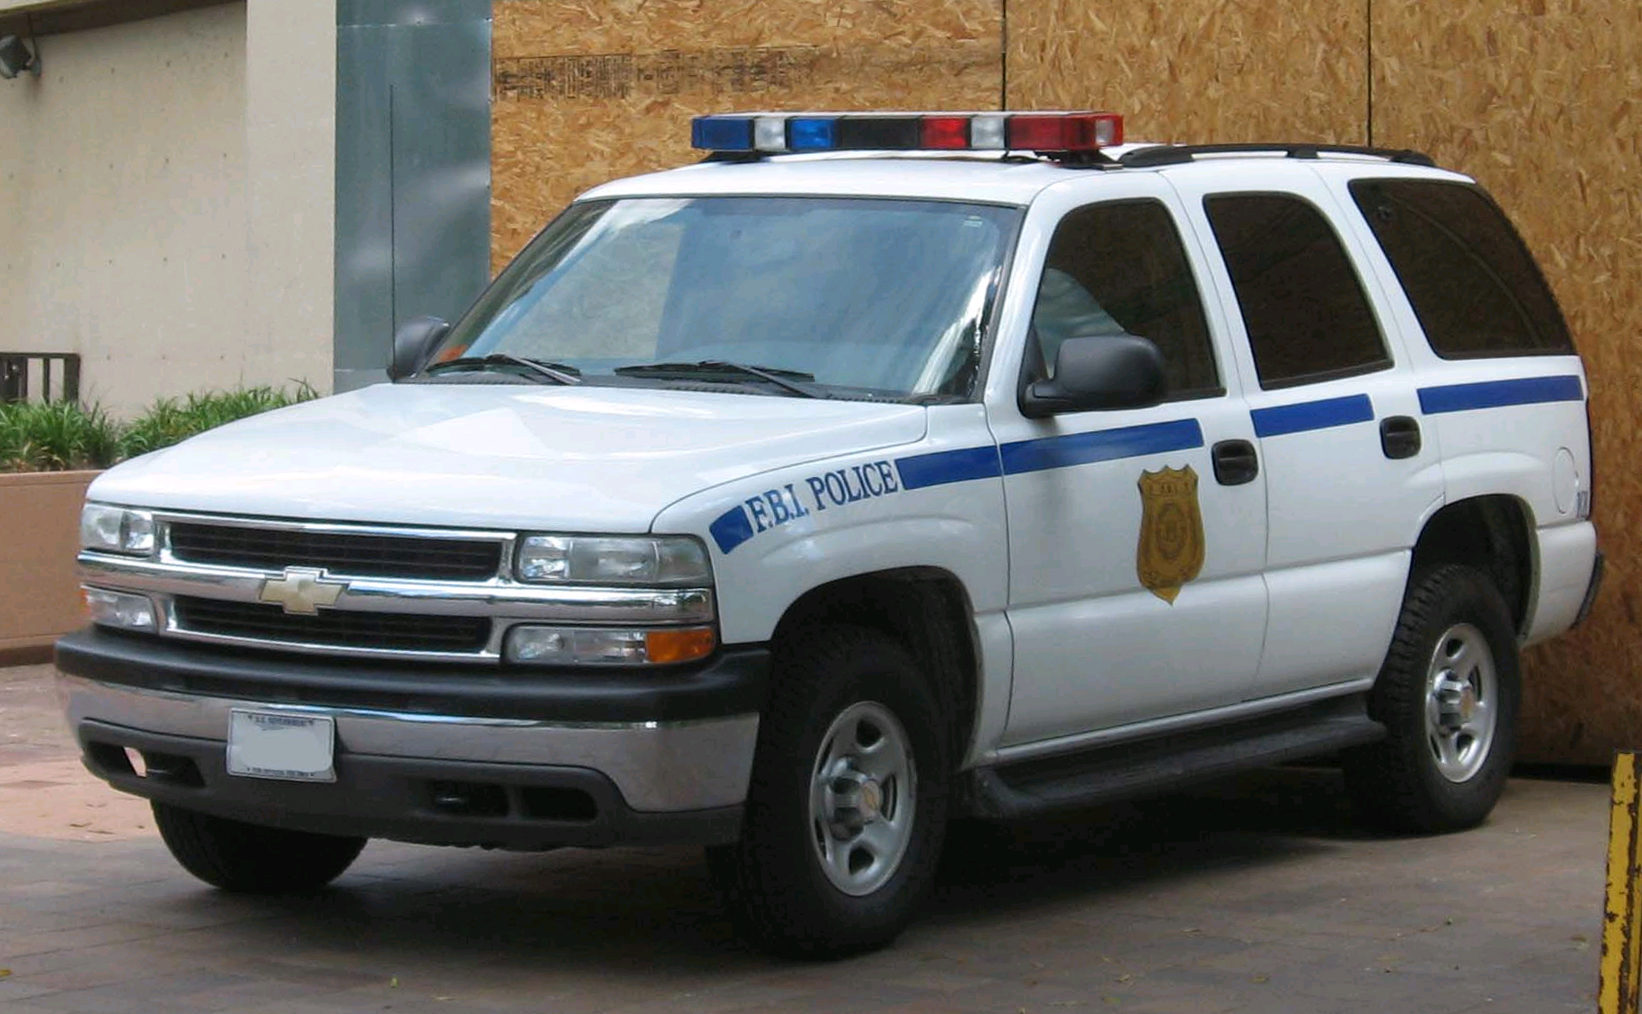 File Chevrolet Tahoe Gmt400 Police Jpg From Wikipedia